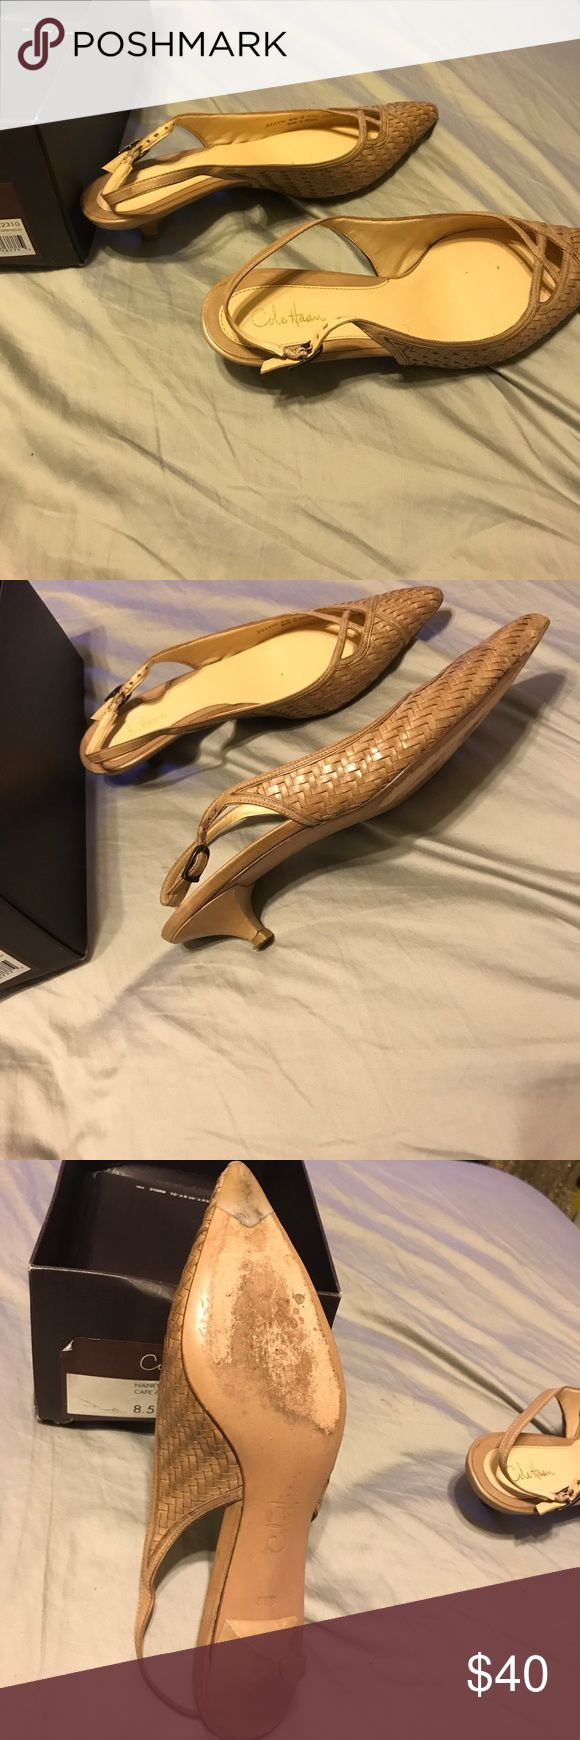 Cole Hann shoes Shoes, used, but in excellent condition Cole Haan Shoes Heels